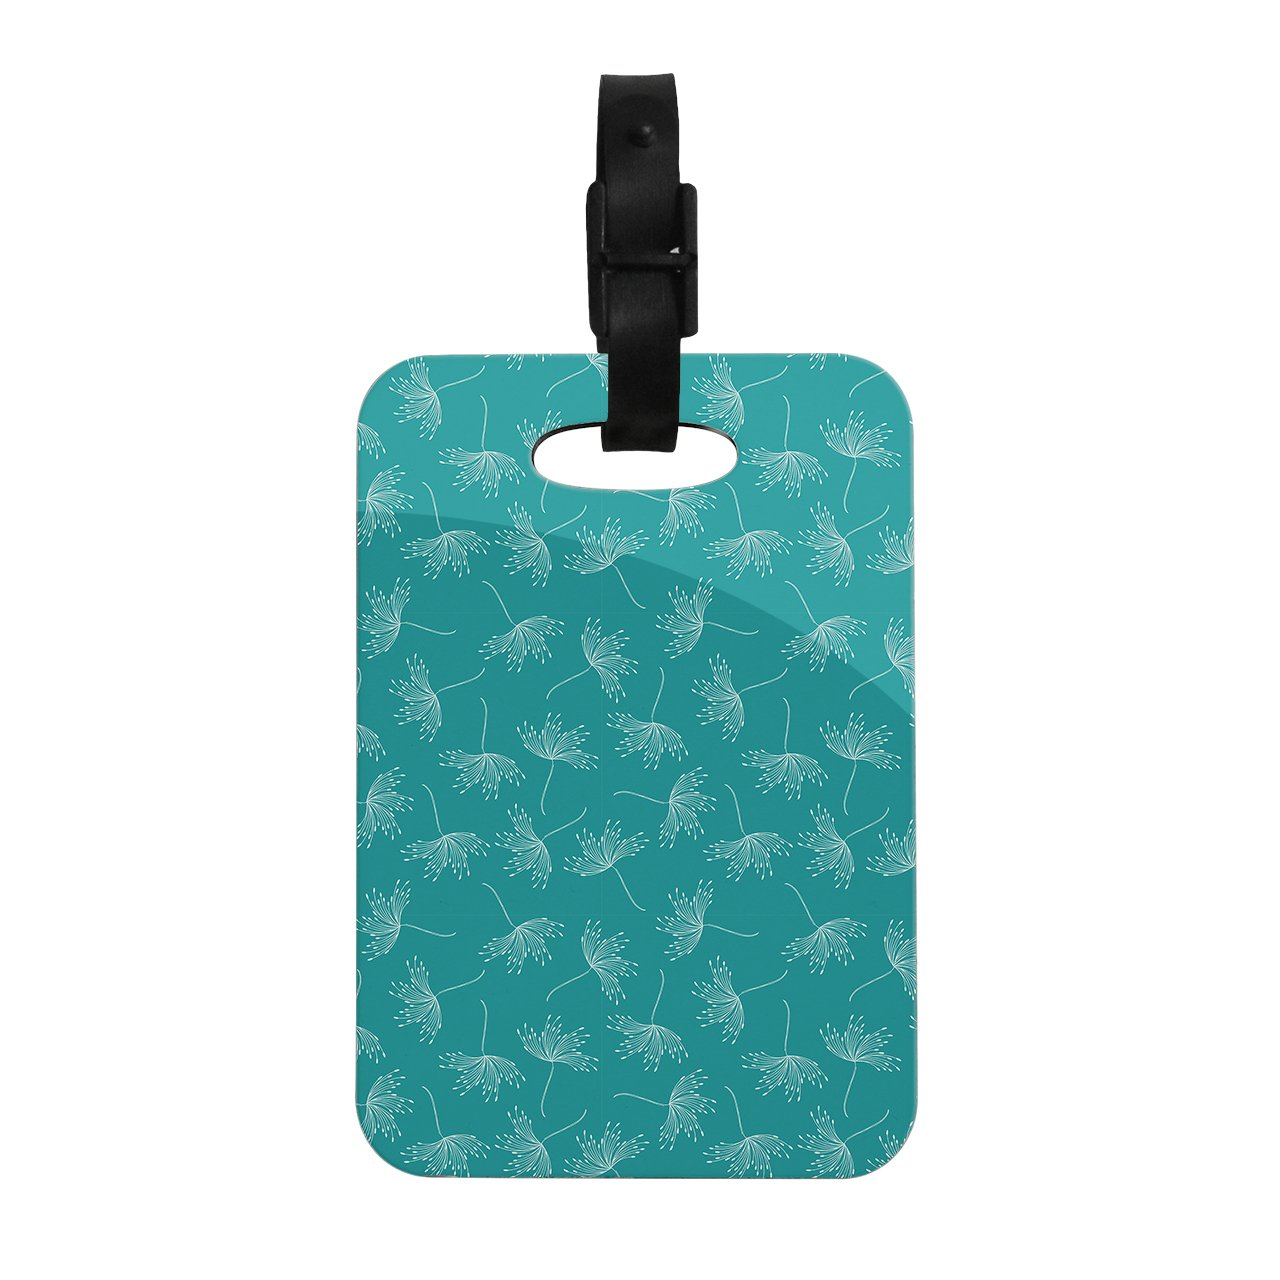 Kess InHouse Emma Frances Windswept Teal White Decorative Luggage Tag, 4 by 4-Inch online master kess v5 017 v2 23 ktag v7 020 v2 23 no tokens limit kess 5 017 k tag k tag 7 020 ecu programmer dhl free